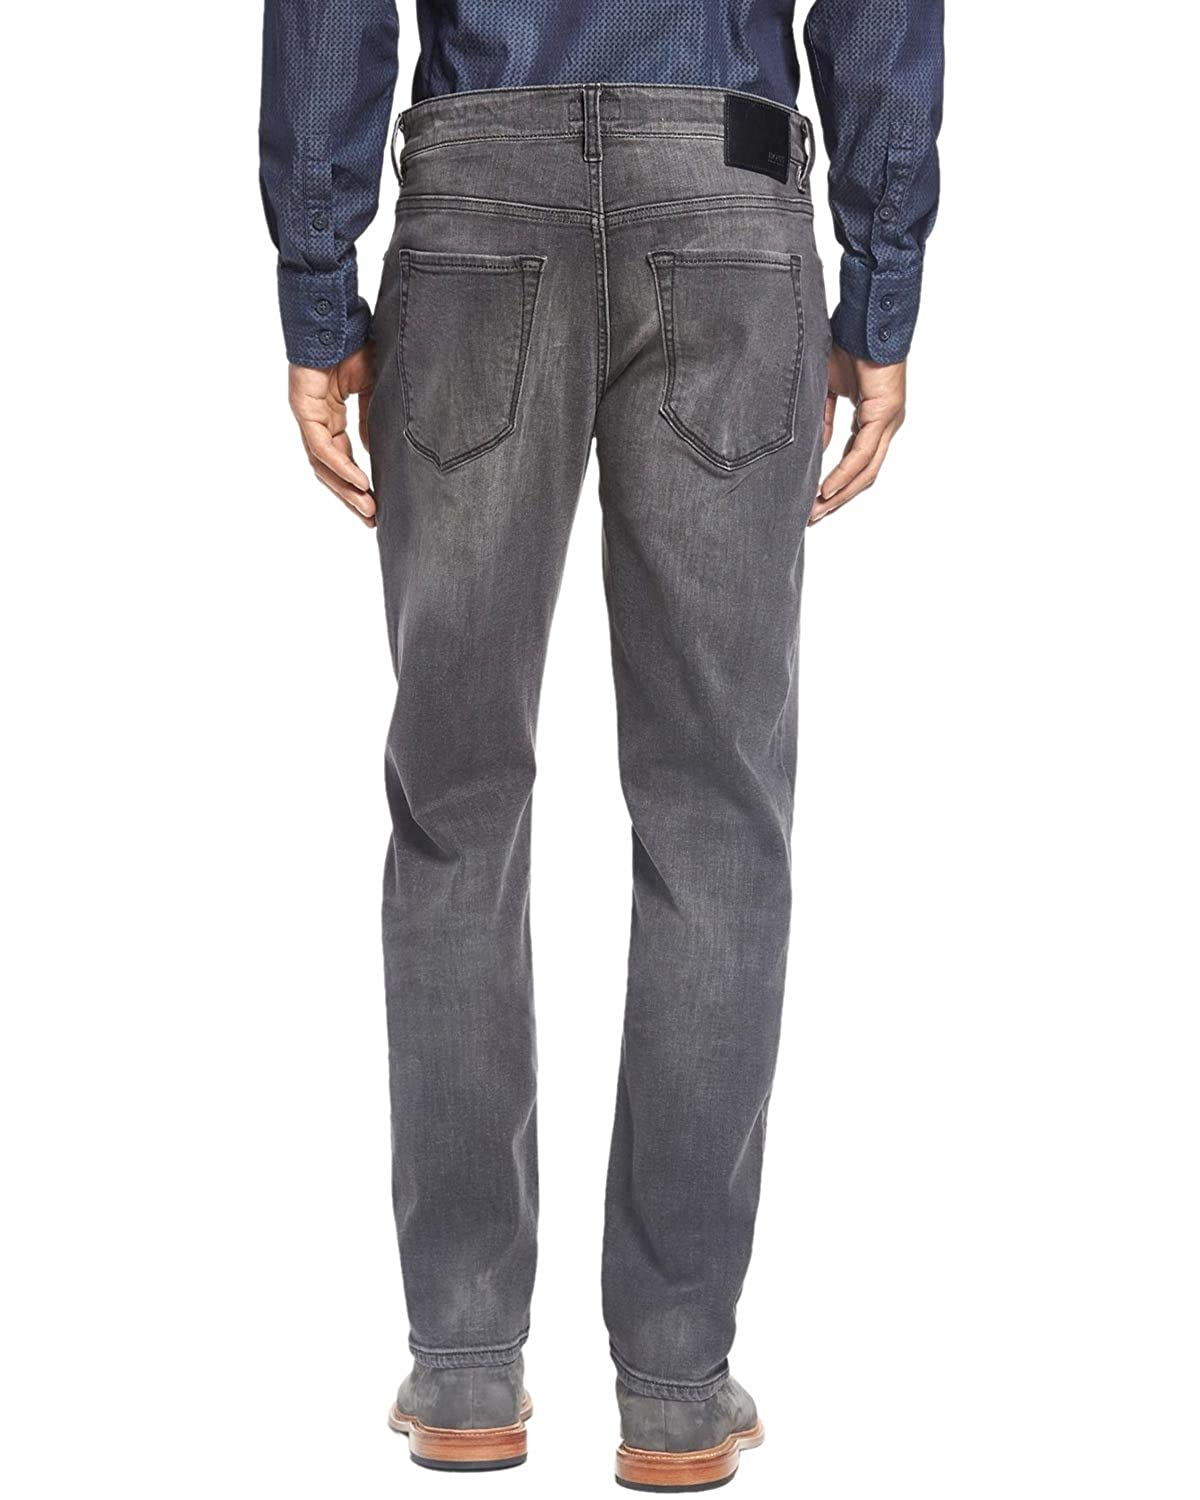 640003250 Amazon.com: Hugo Boss Men's Green Label Maine Regular Fit Stretch Jeans-G-38Wx32L  Gray: Hugo Boss: Clothing